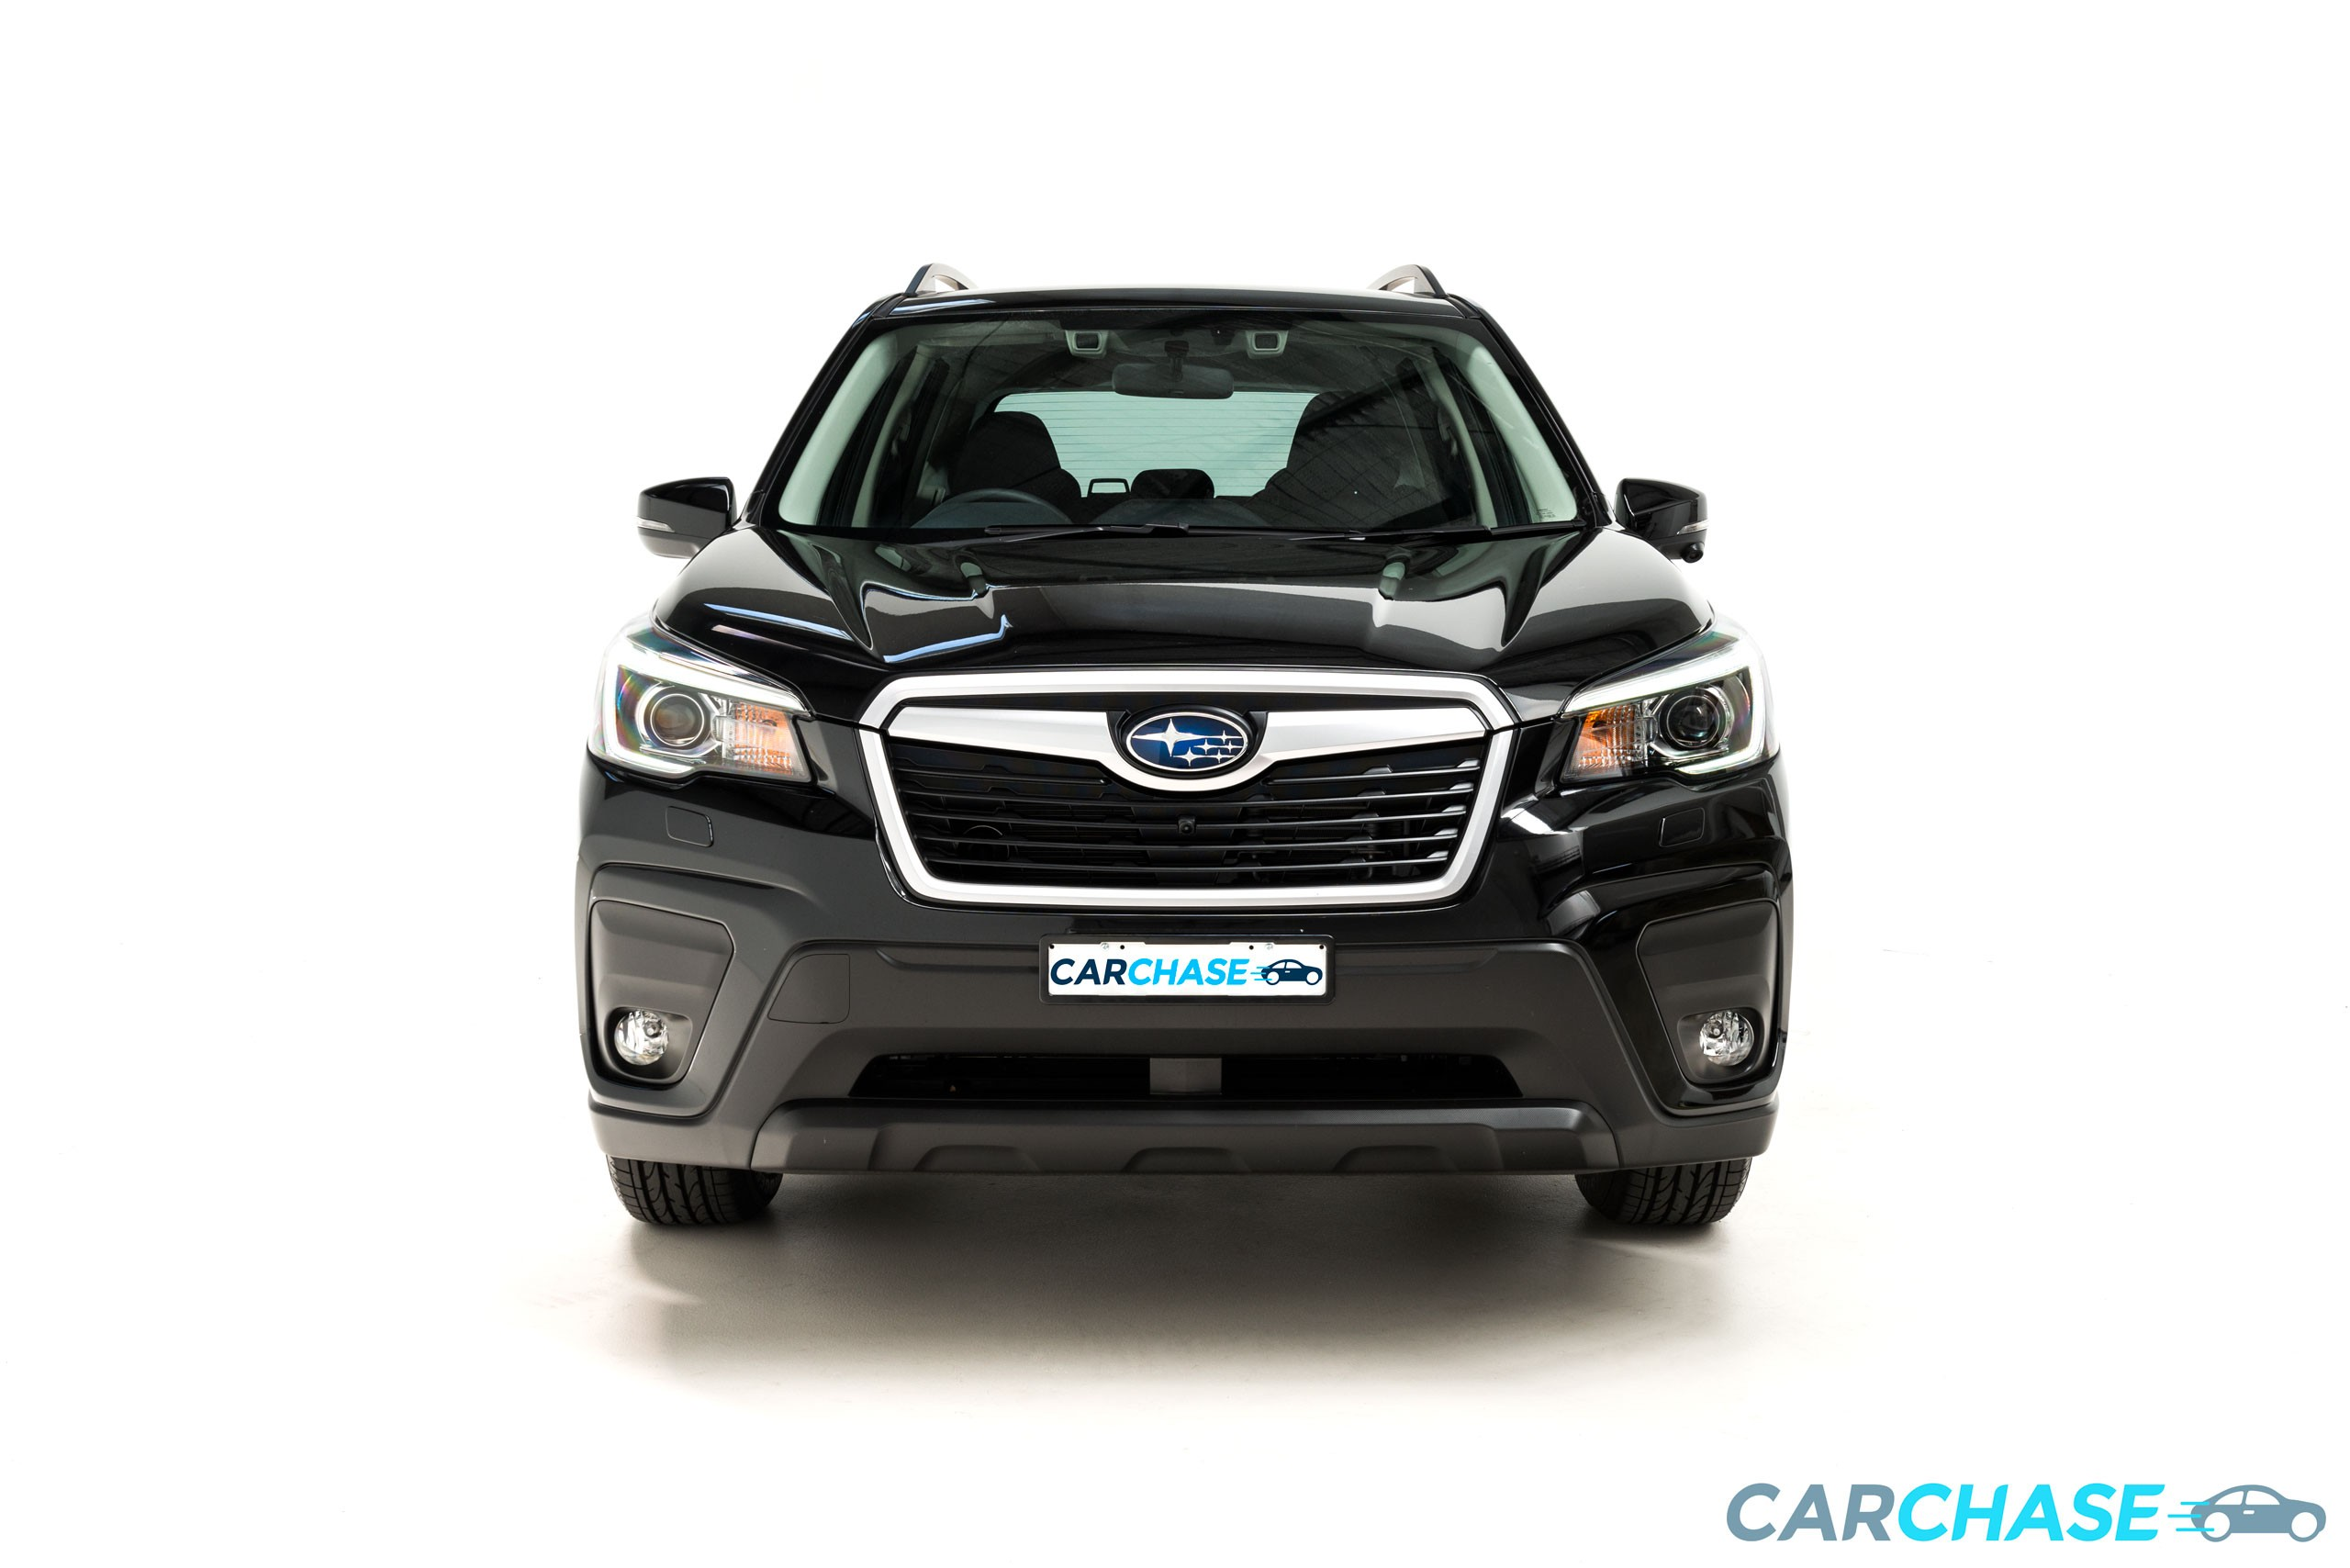 Image of front profile of 2018 Subaru Forester 2.5i-L